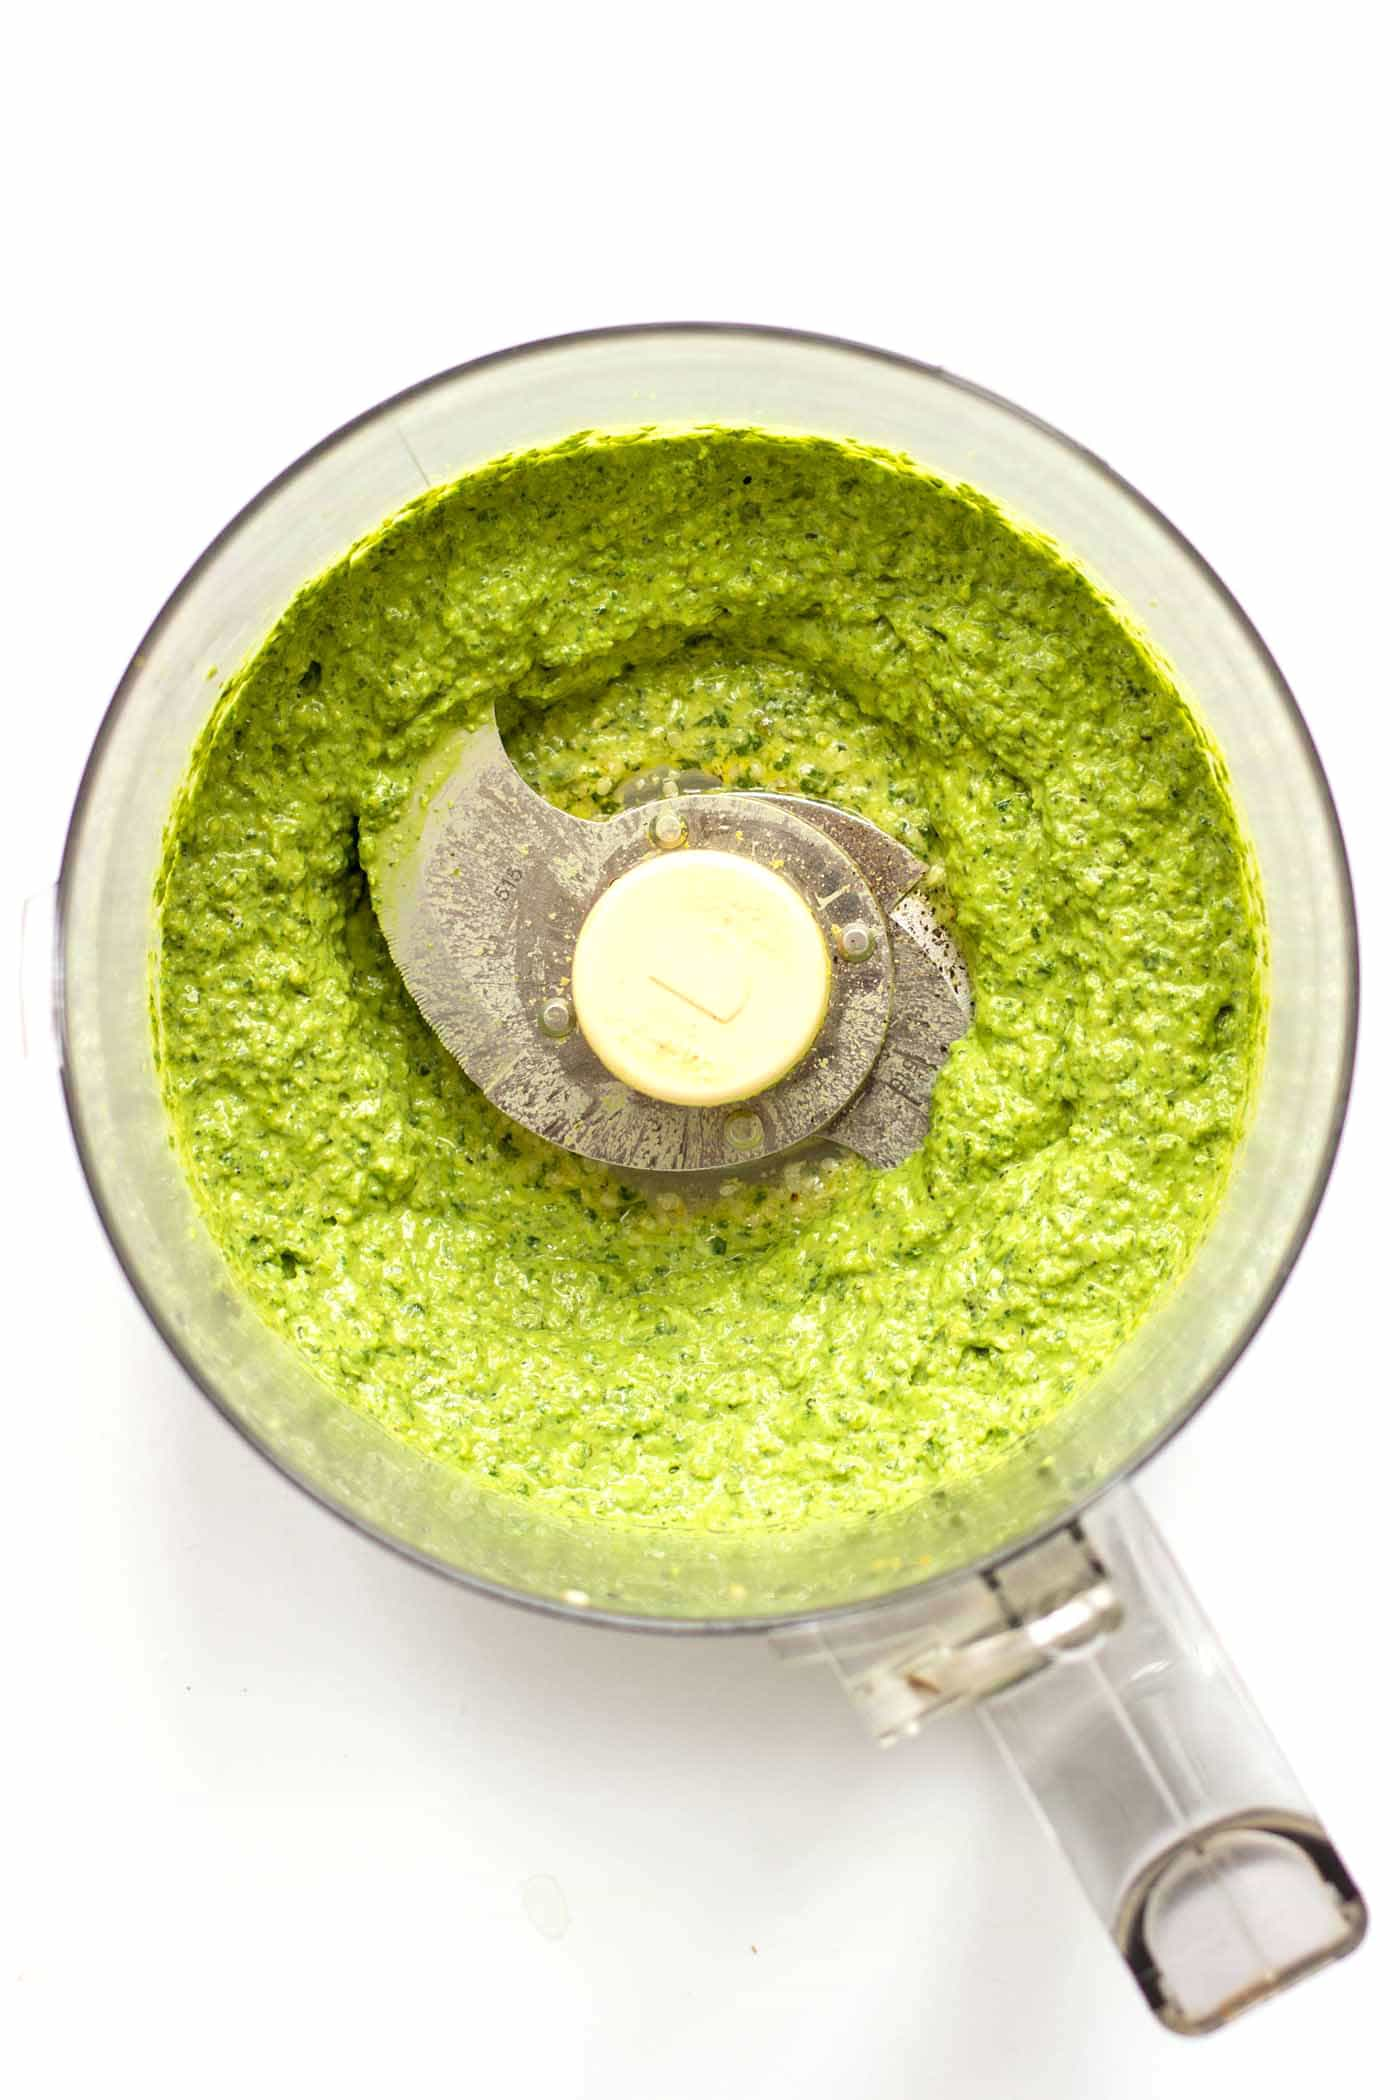 VEGAN HEMP SEED PESTO! Learn how to make this healthy and easy pesto using hemp seeds and avocado!